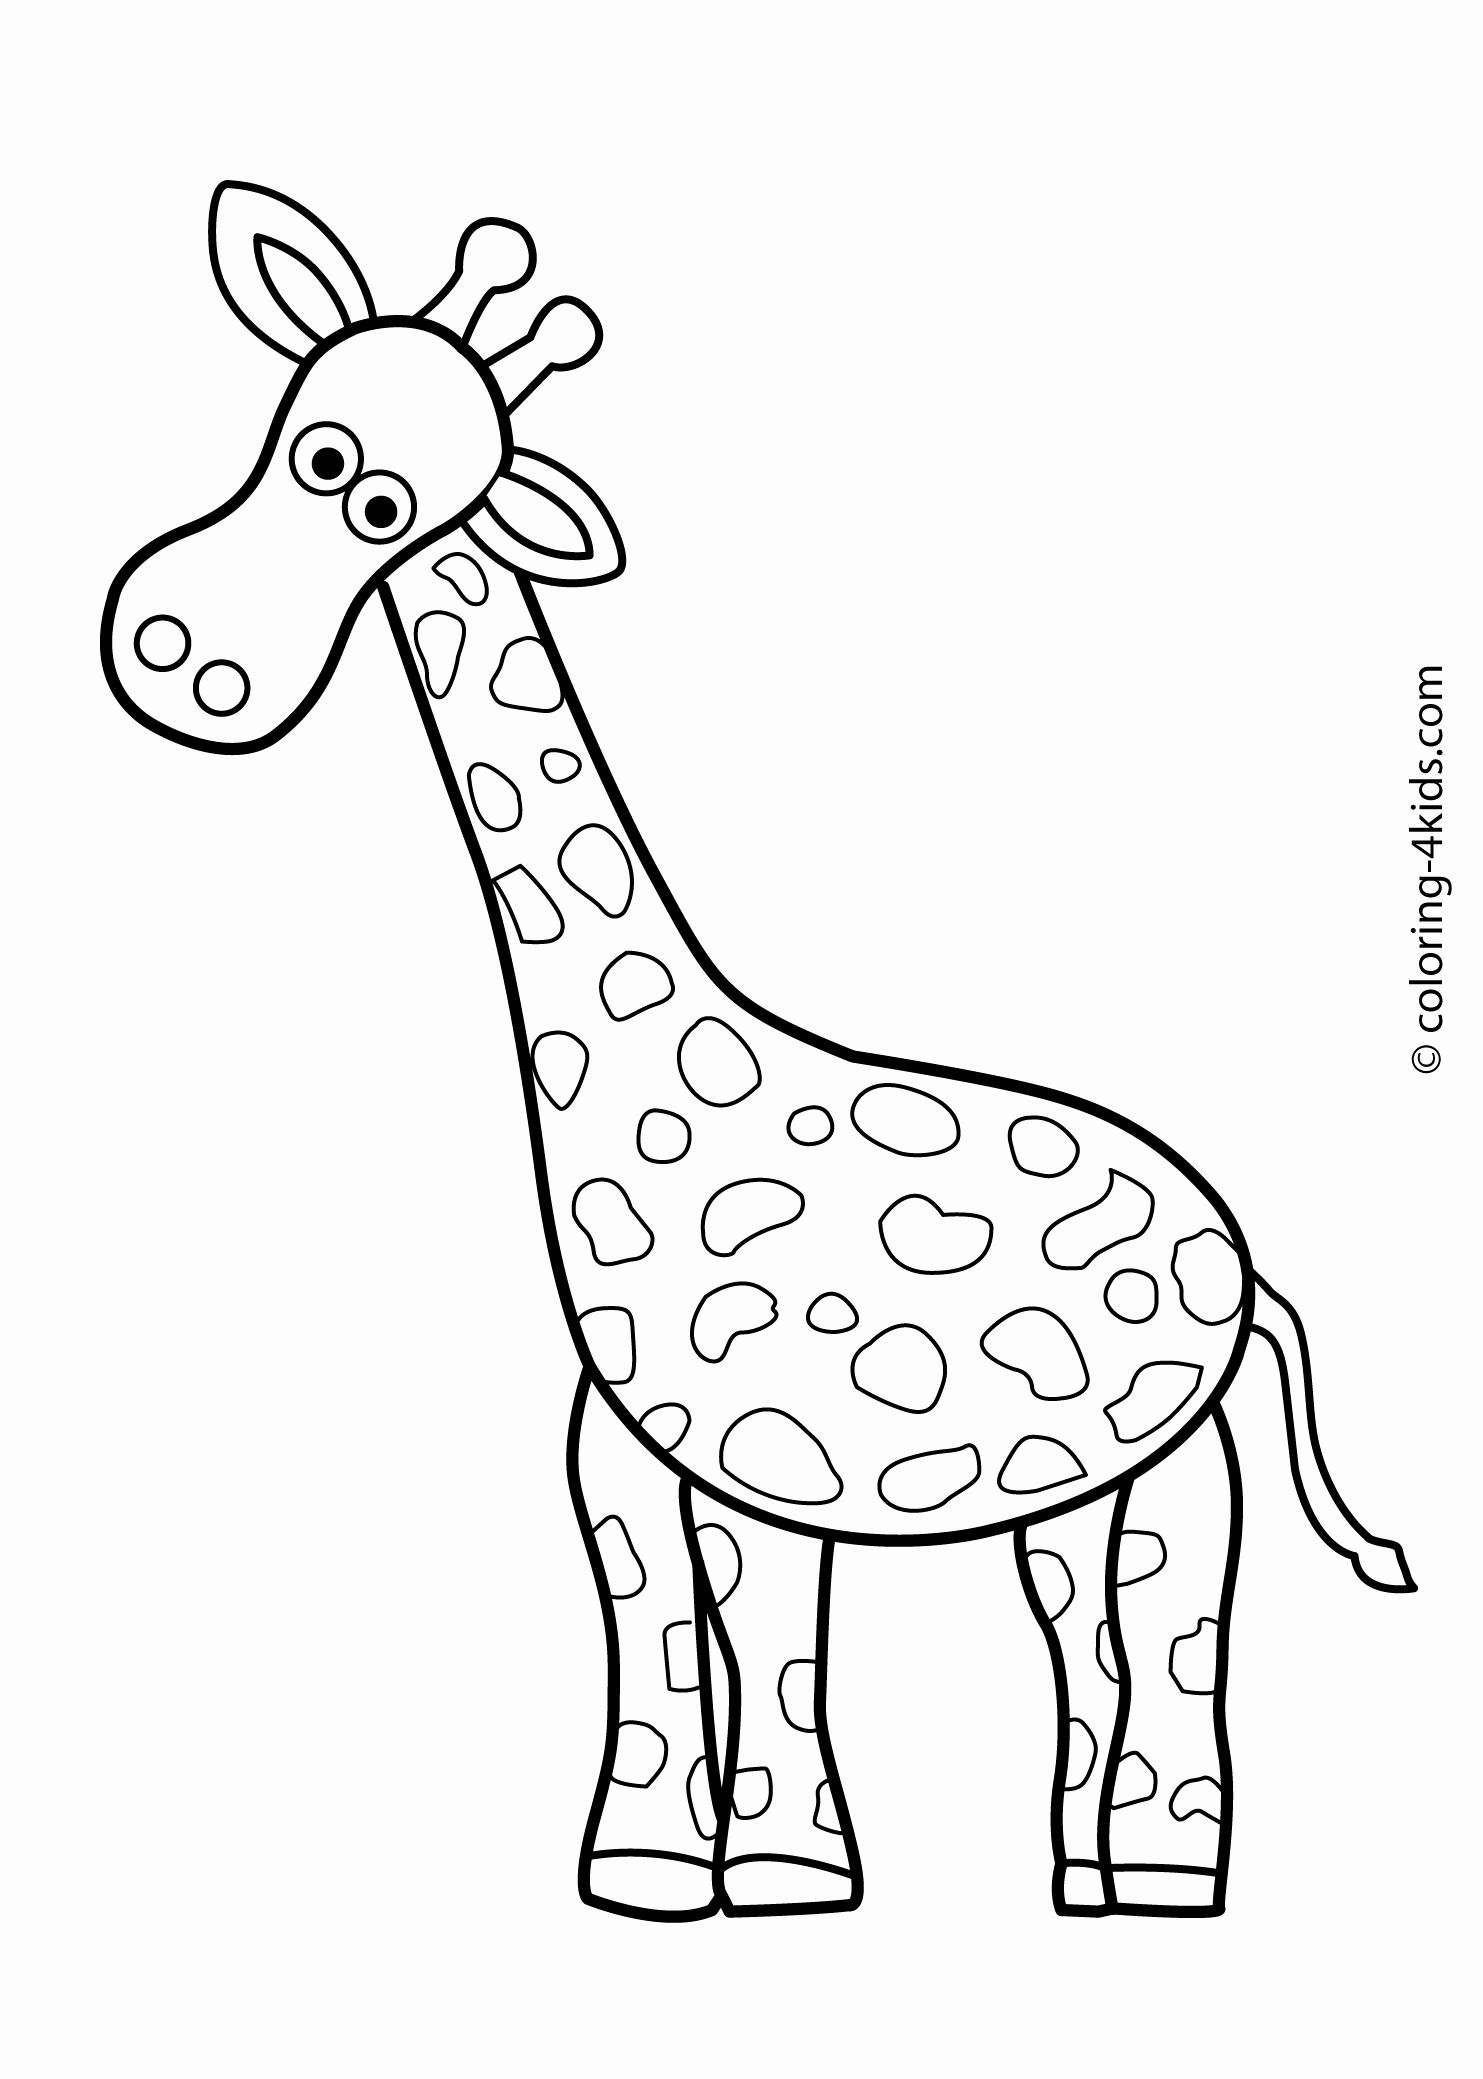 Giraffe Head Coloring Page Inspirational Animals Coloring Pages